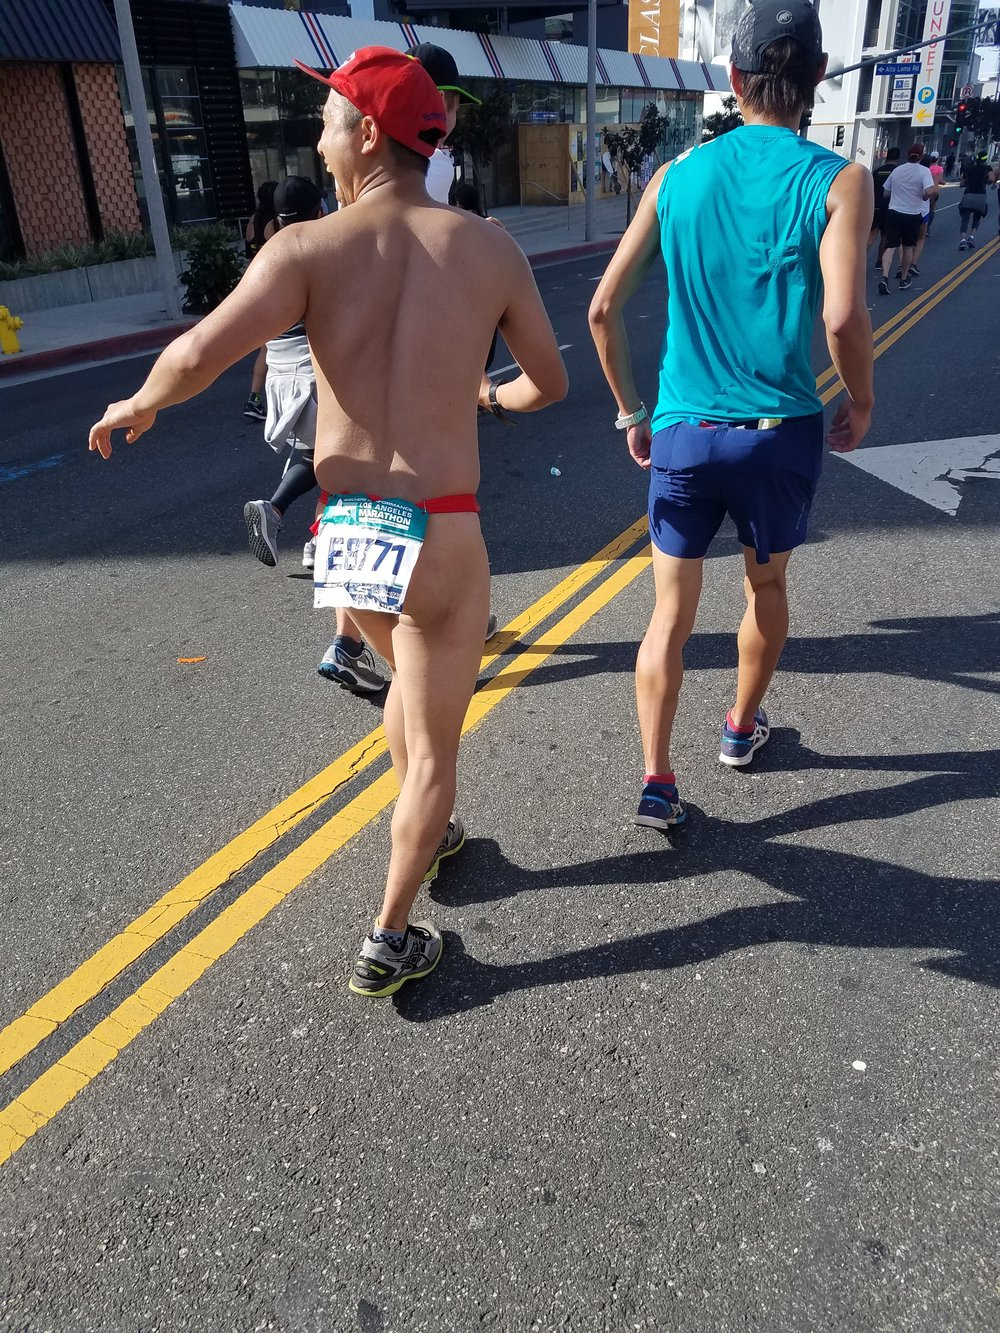 Mile 12: Sunset in West Hollywood. This guy. I told him how much I loved his confidence and how happy he made me. And he and his friend cheered. I ran near them for a few miles because watching people's reactions was absolutely life-giving. The thong man is officially a totem in my life.